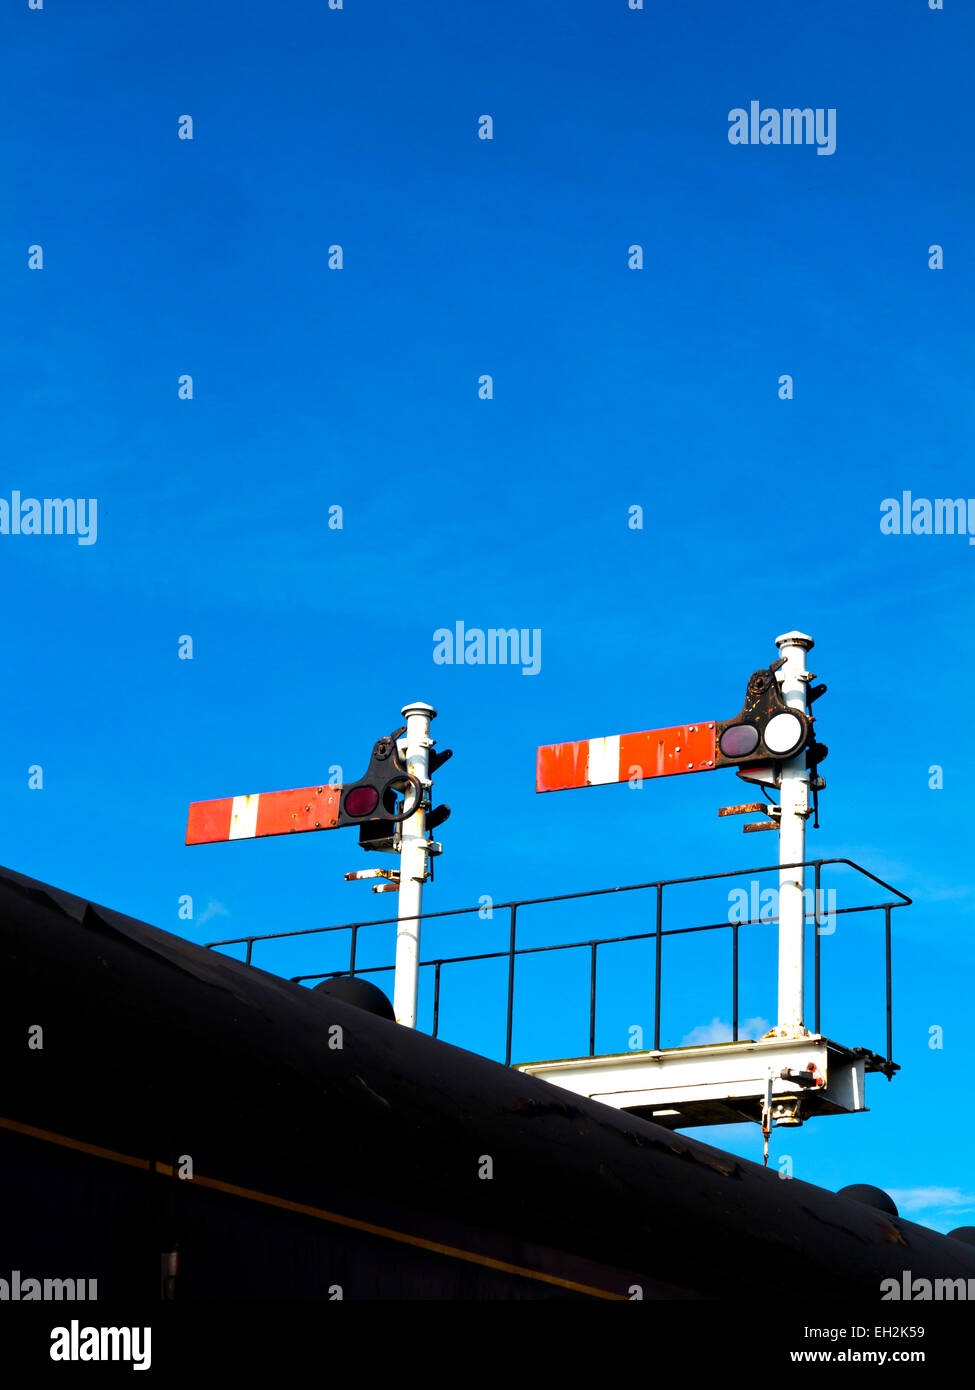 Railway semaphore stop signals against a blue sky on the Churnet Valley Railway, Staffordshire, England UK - Stock Image